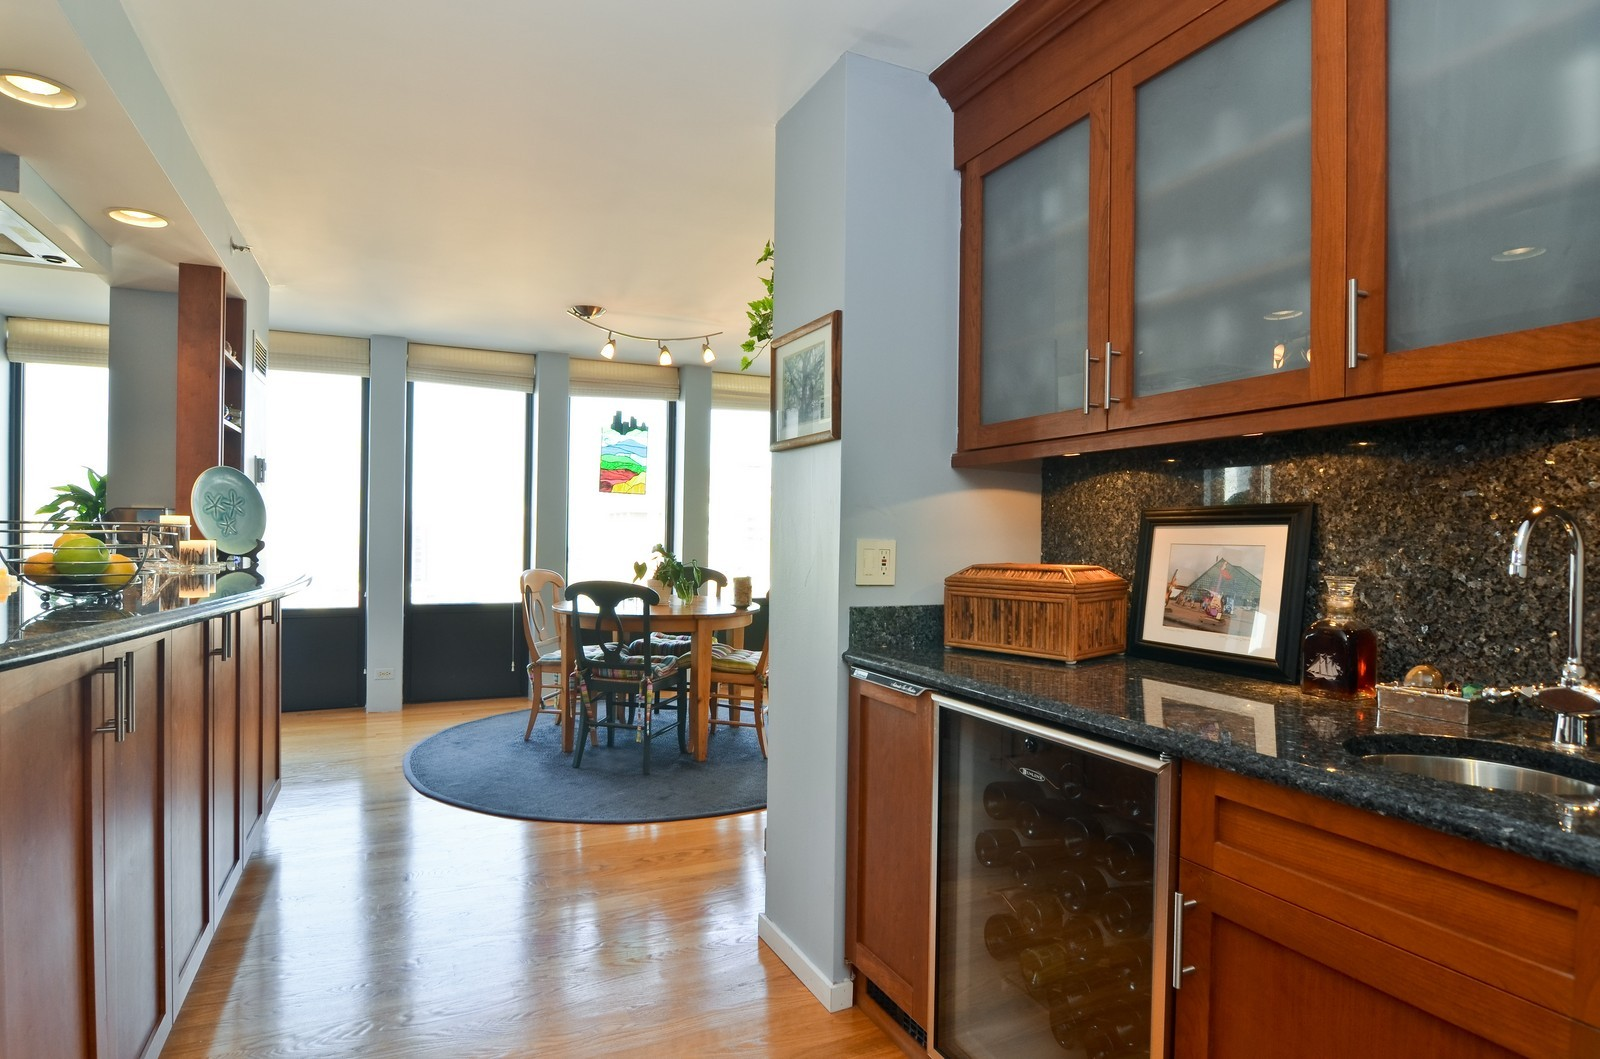 Real Estate Photography - 1230 N. State Parkway, Unit 26BC, Chicago, IL, 60610 - Wet bar with built in wine fridge & ice maker